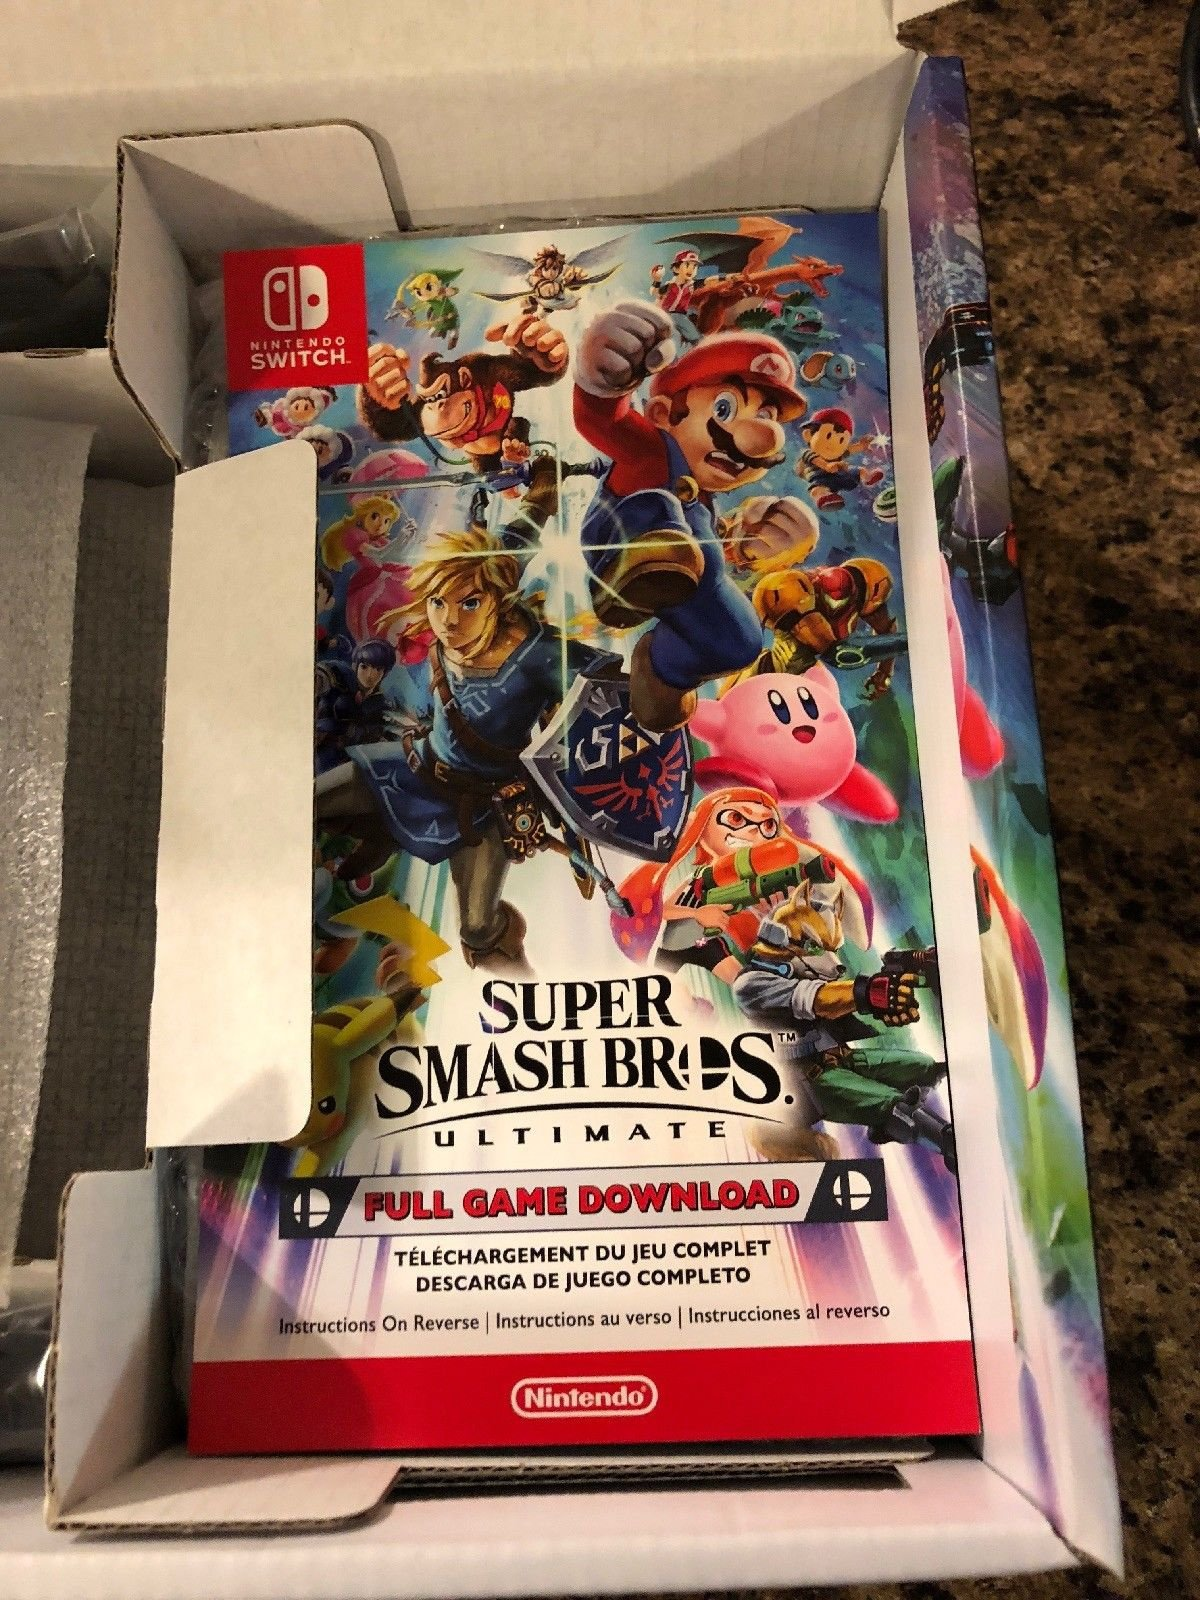 A Super Smash Bros Ultimate Switch Bundle Has Just Sold On Ebay For